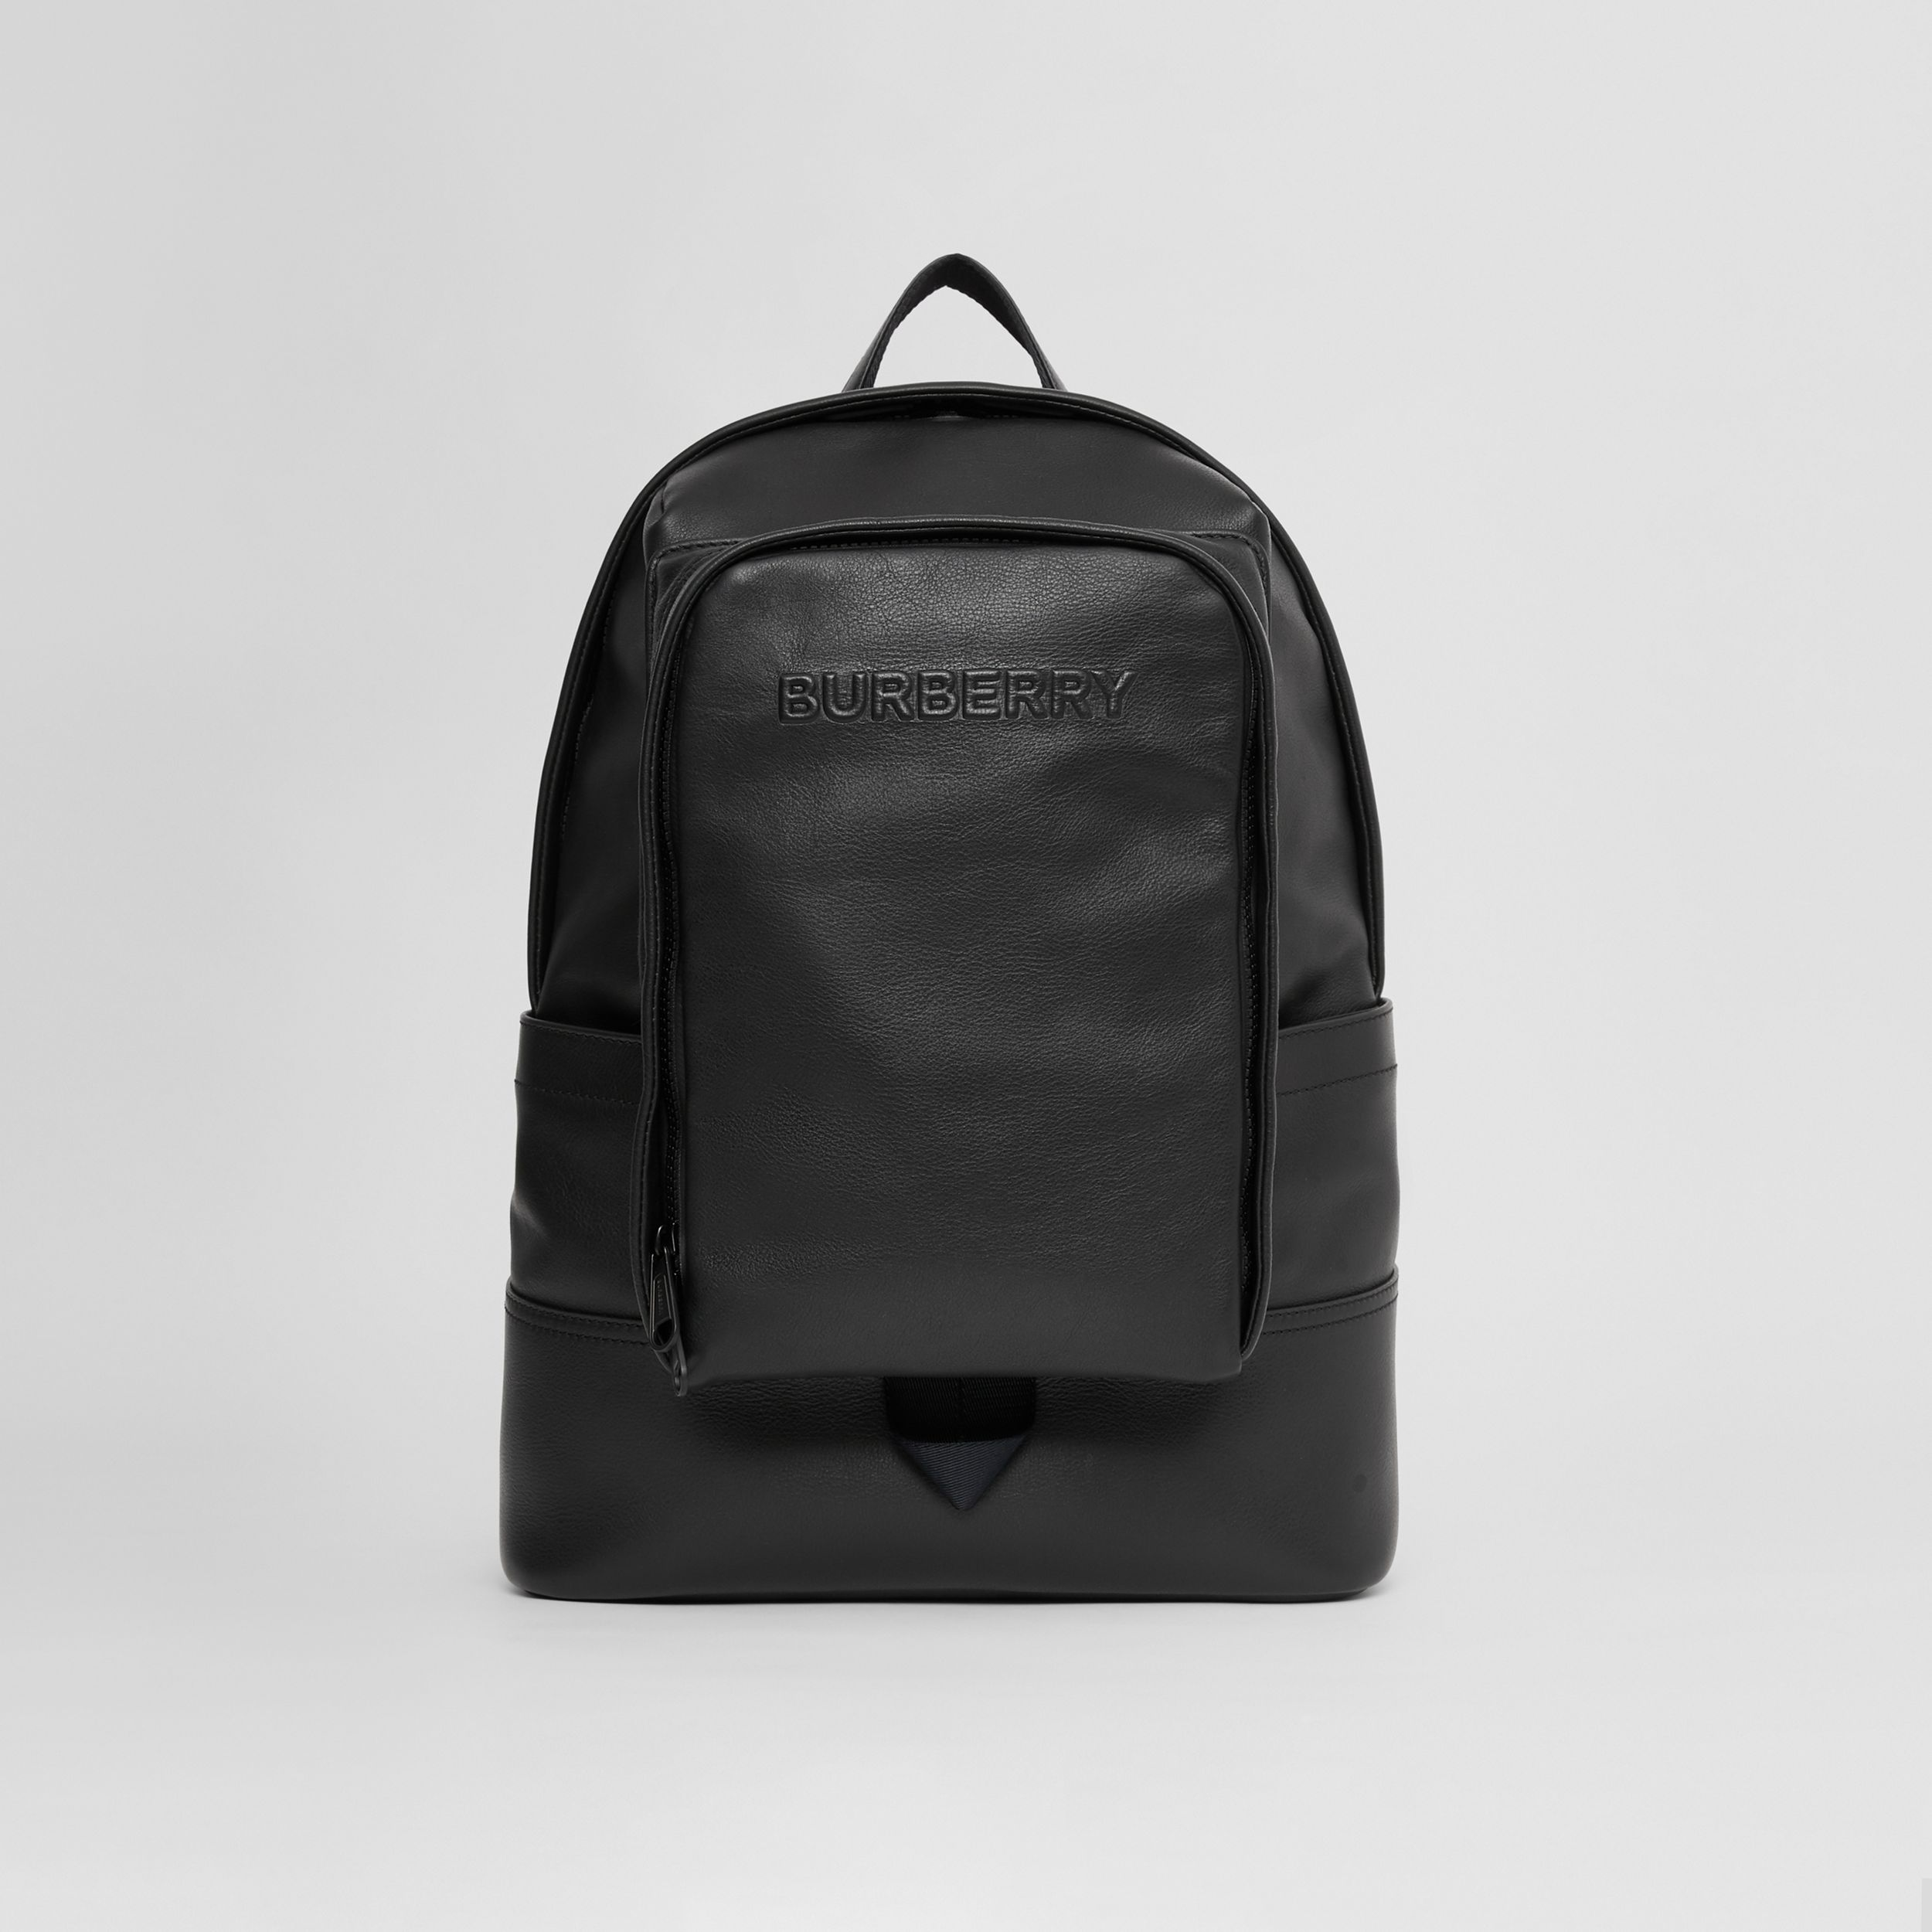 Large Logo Embossed Leather Backpack in Black - Men | Burberry United States - 1